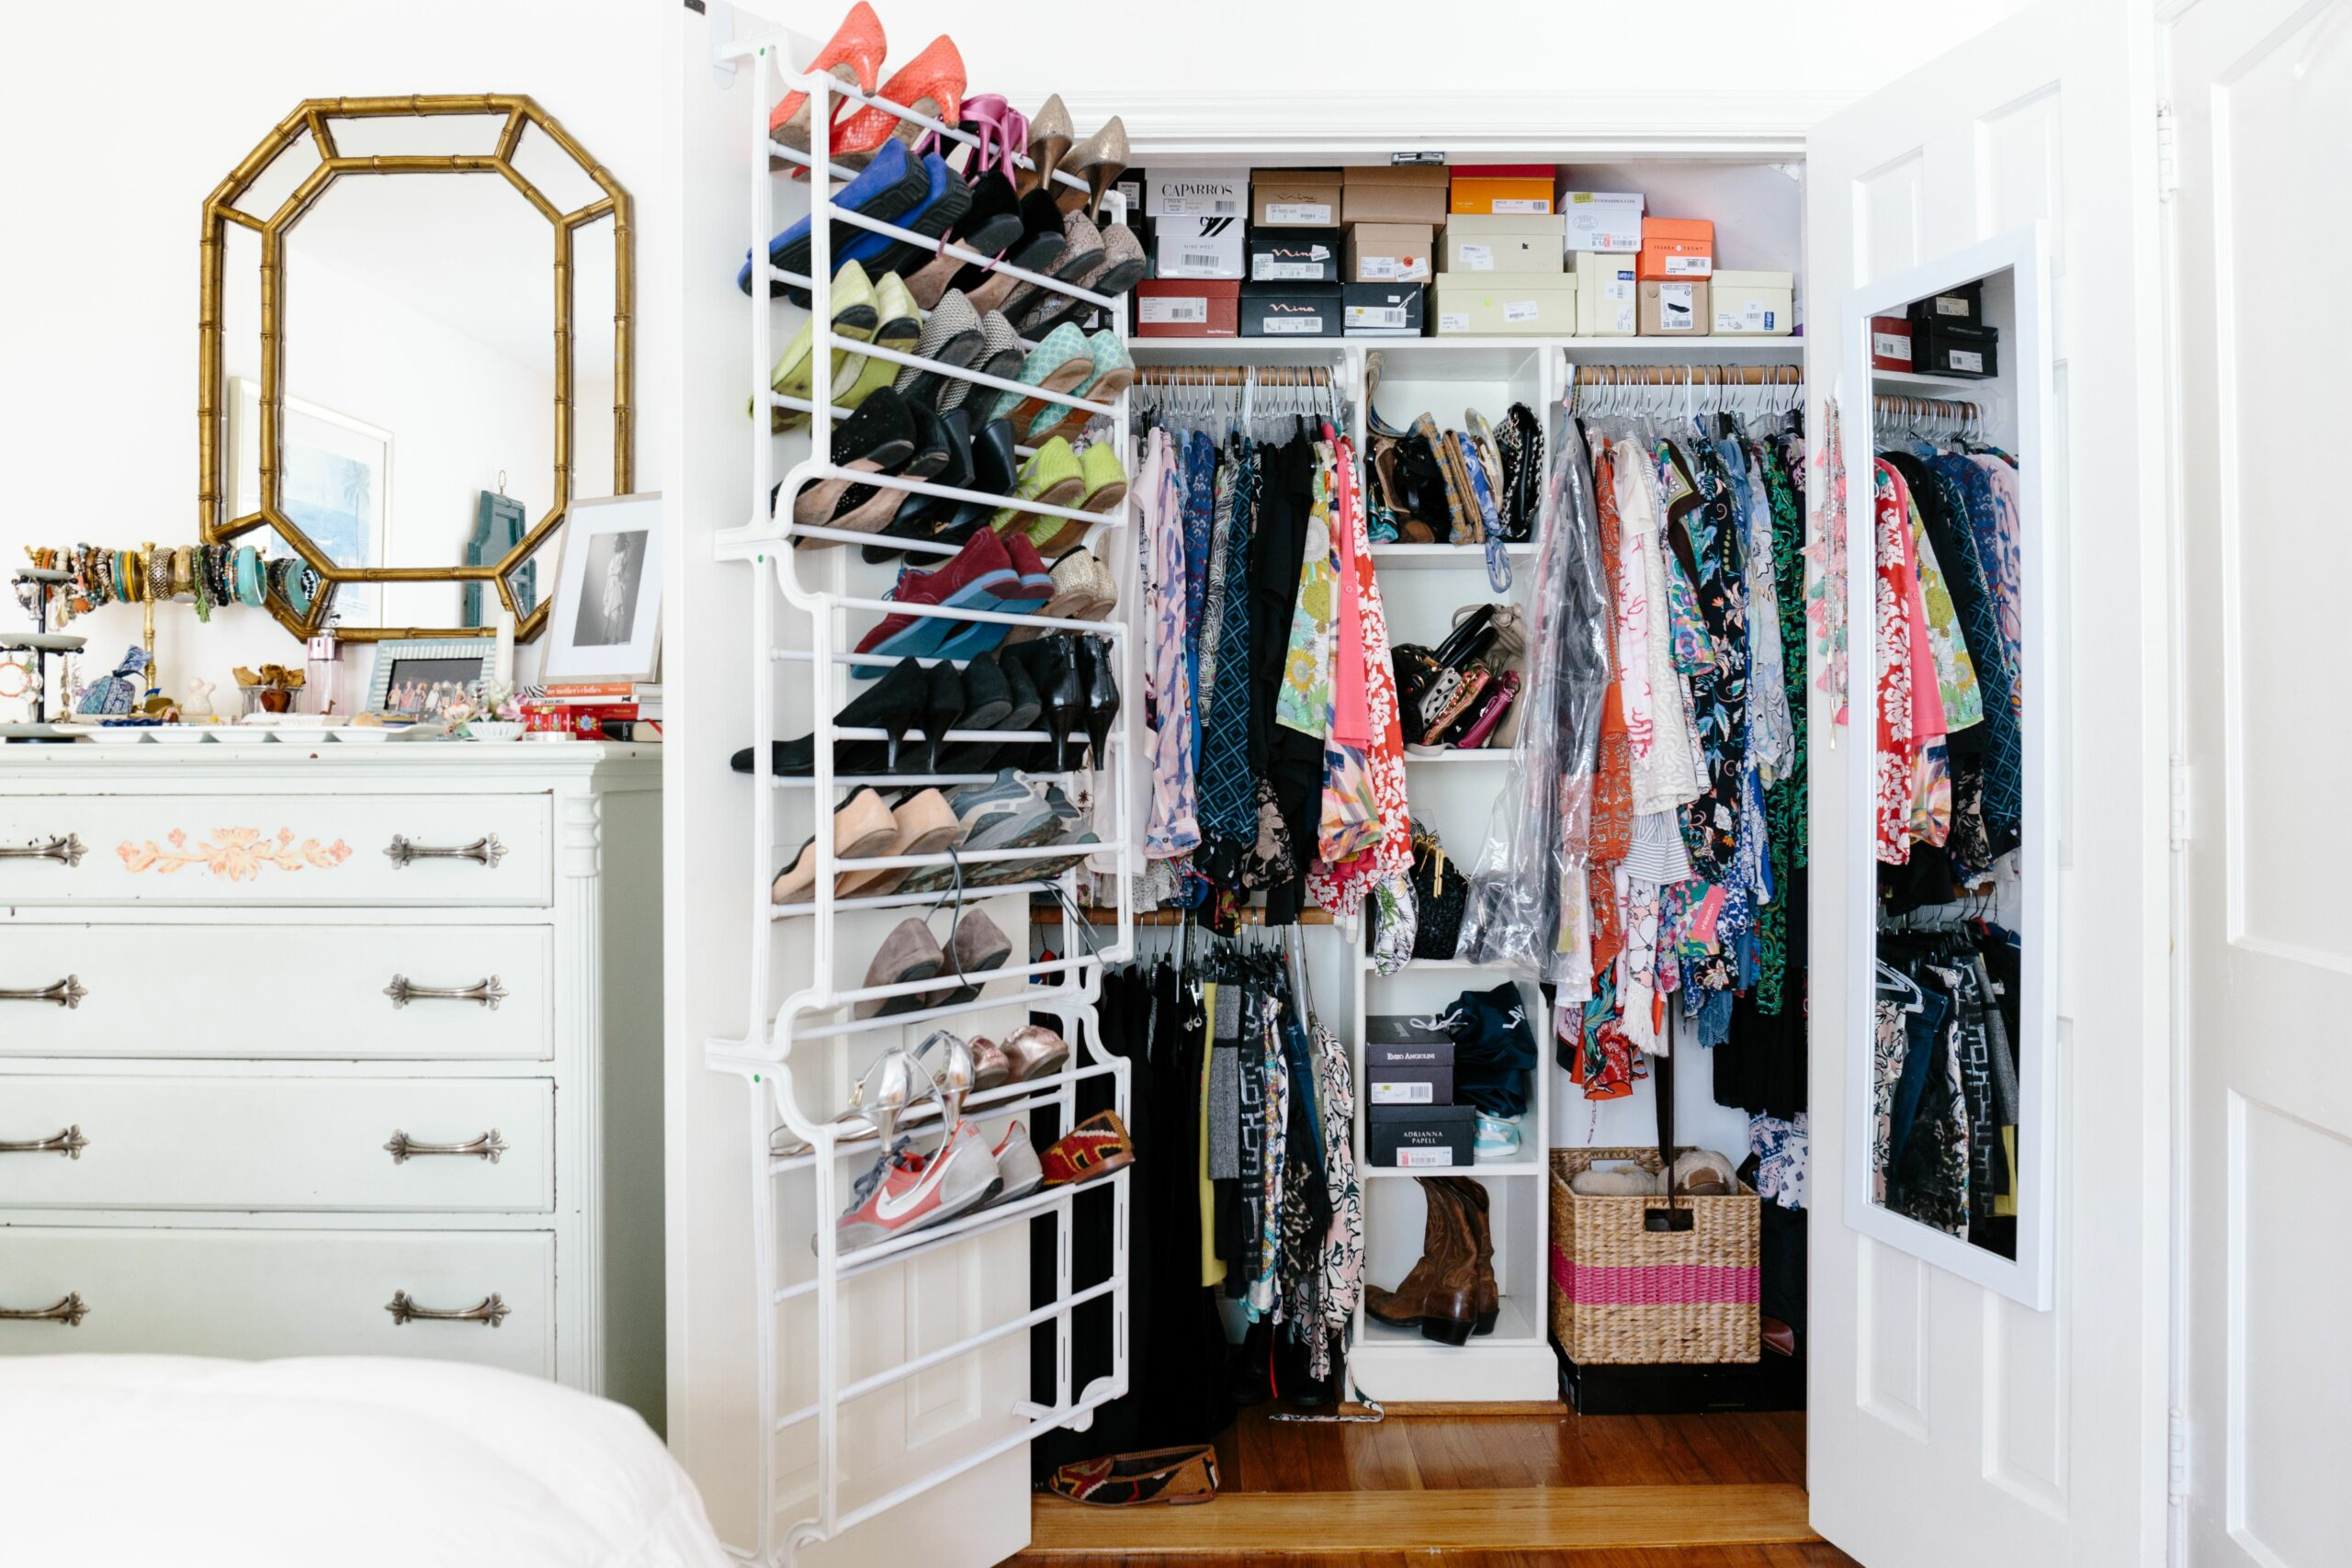 Closet Storage Ideas - Small Closet Organization | Apartment Therapy - closet ideas in apartment